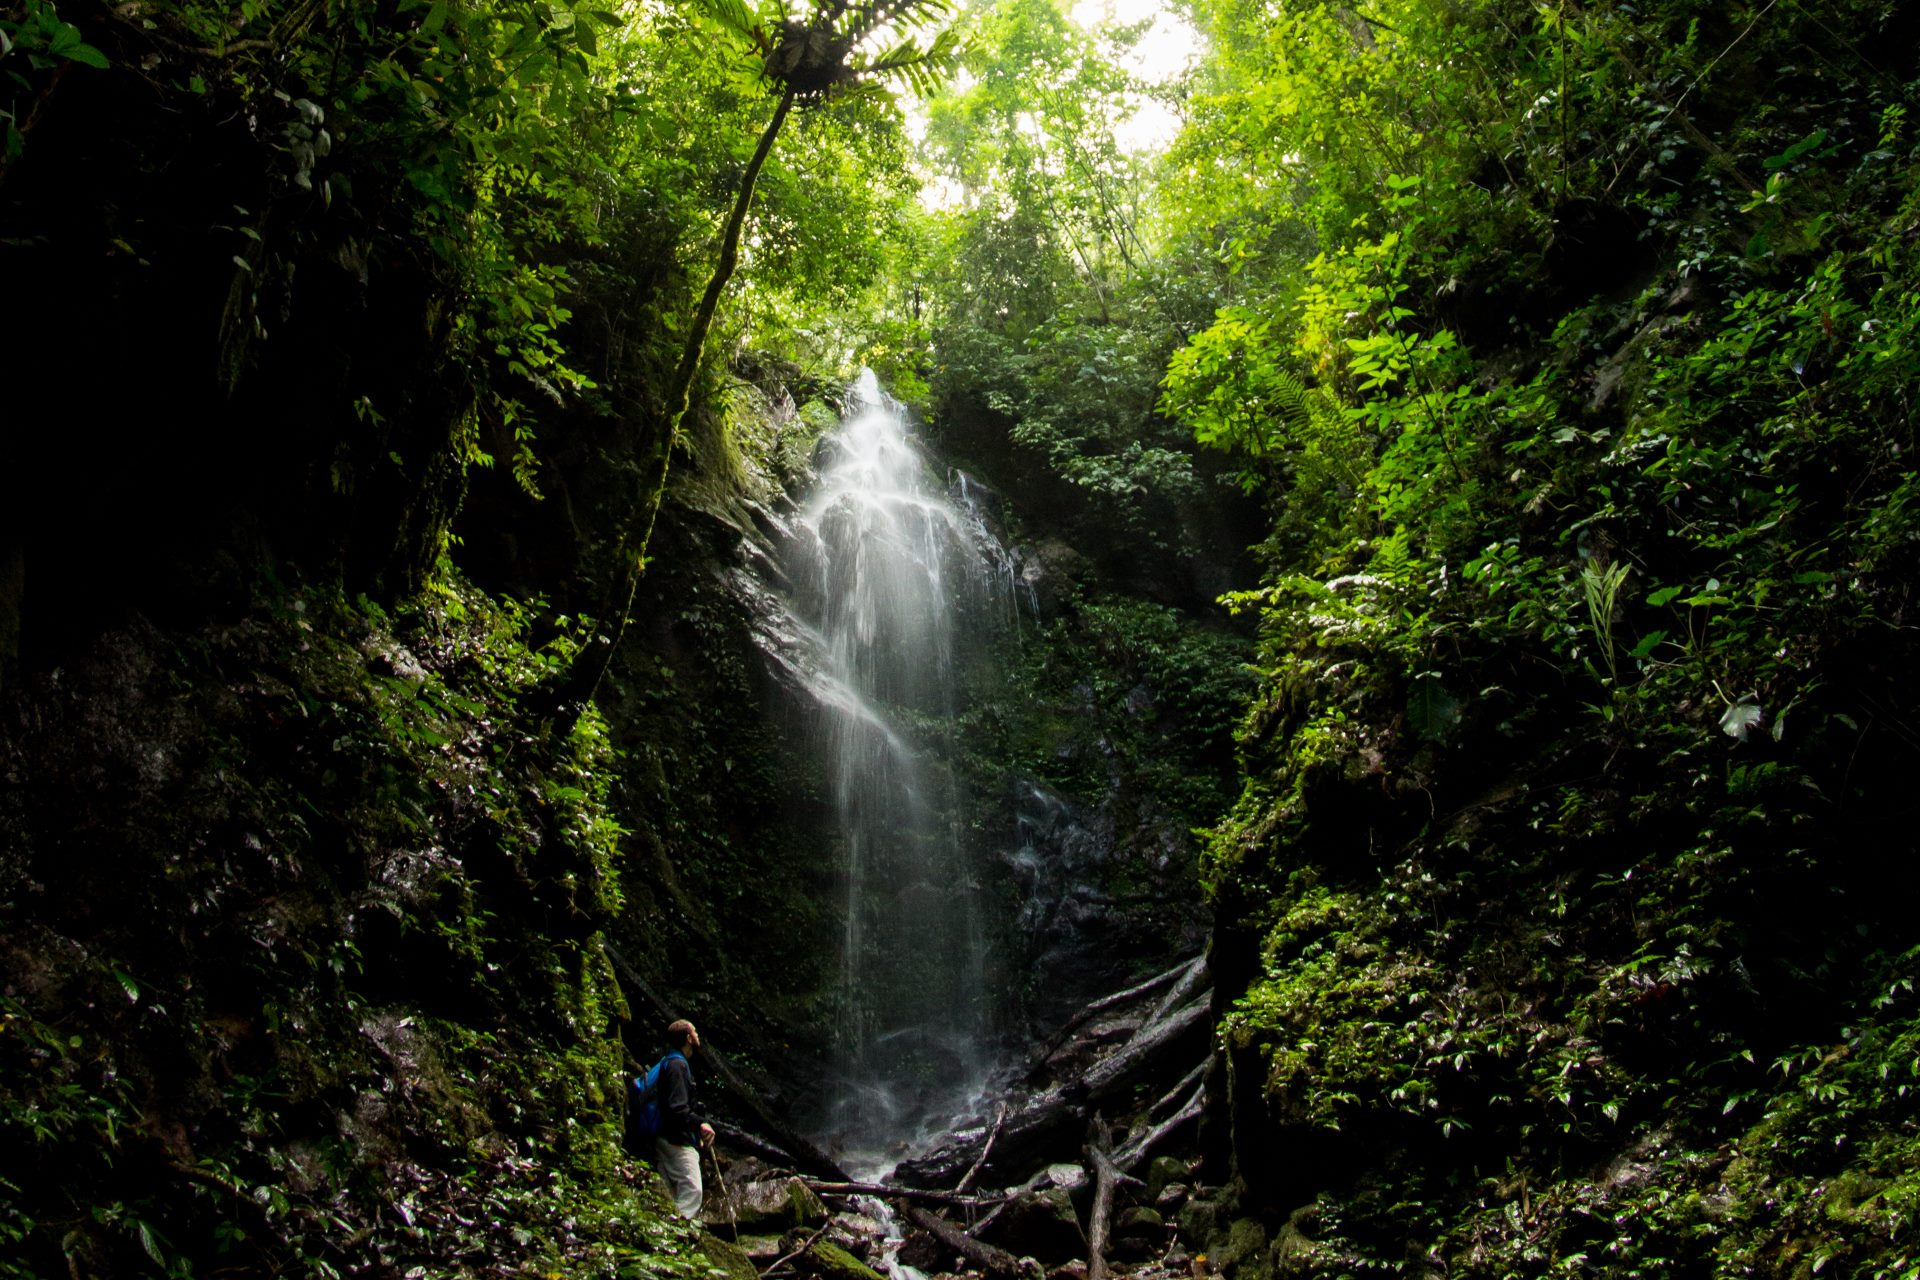 Bukit Tapan Waterfall Sumatra jungle trekking Rainforest hiking ecotourism